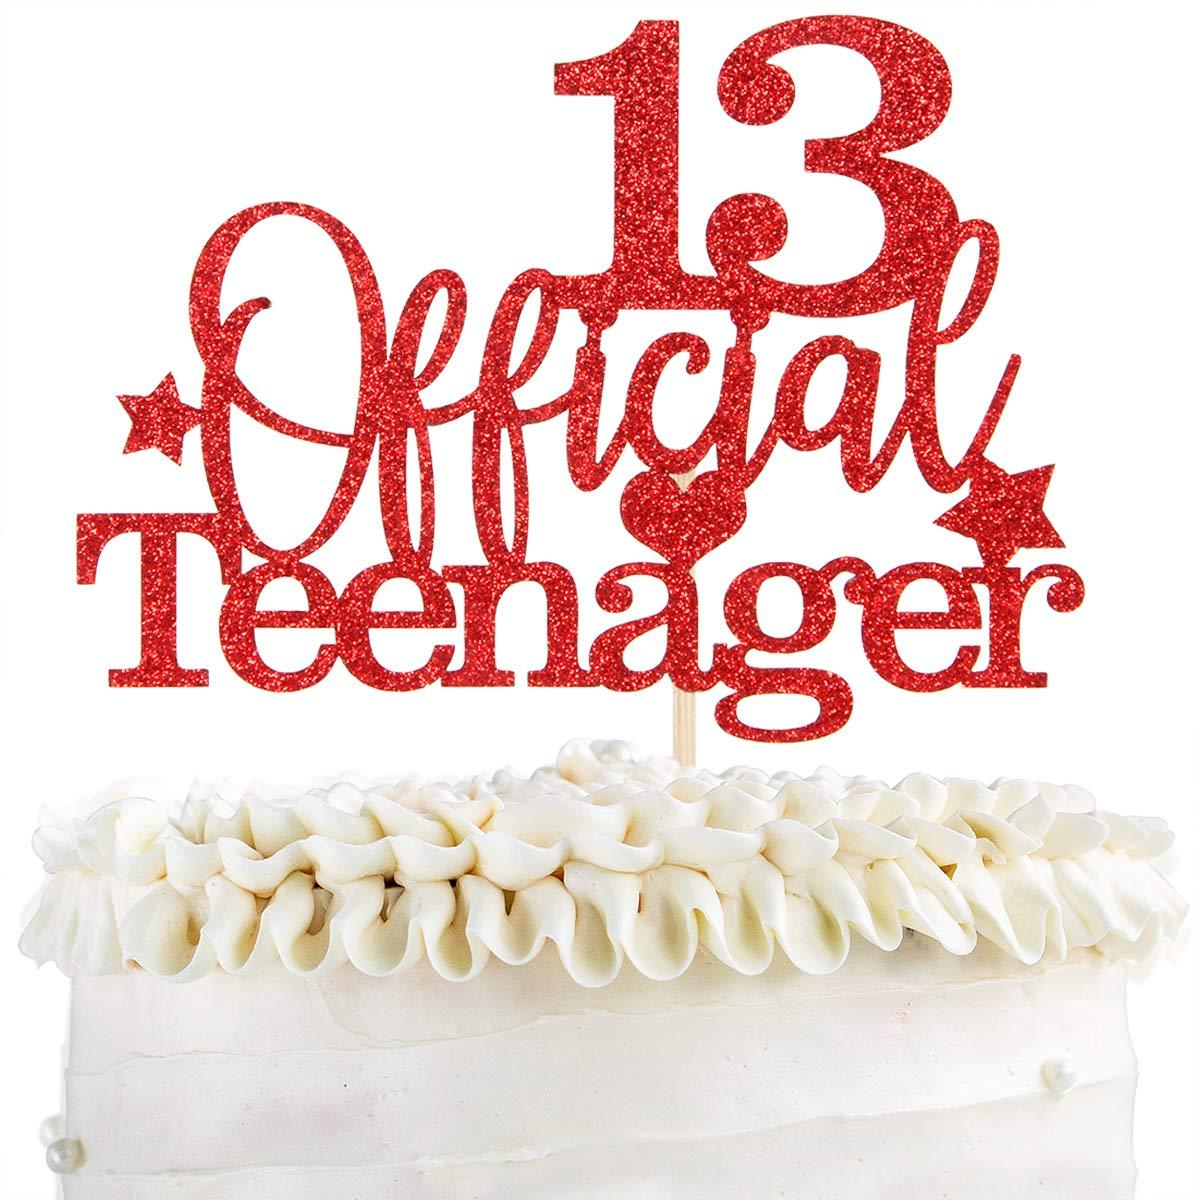 Official 13th Birthday Party Decoration Supplies WeBenison Red Glitter IM 13 Bitches Cake Topper for Cheers to 13 Years